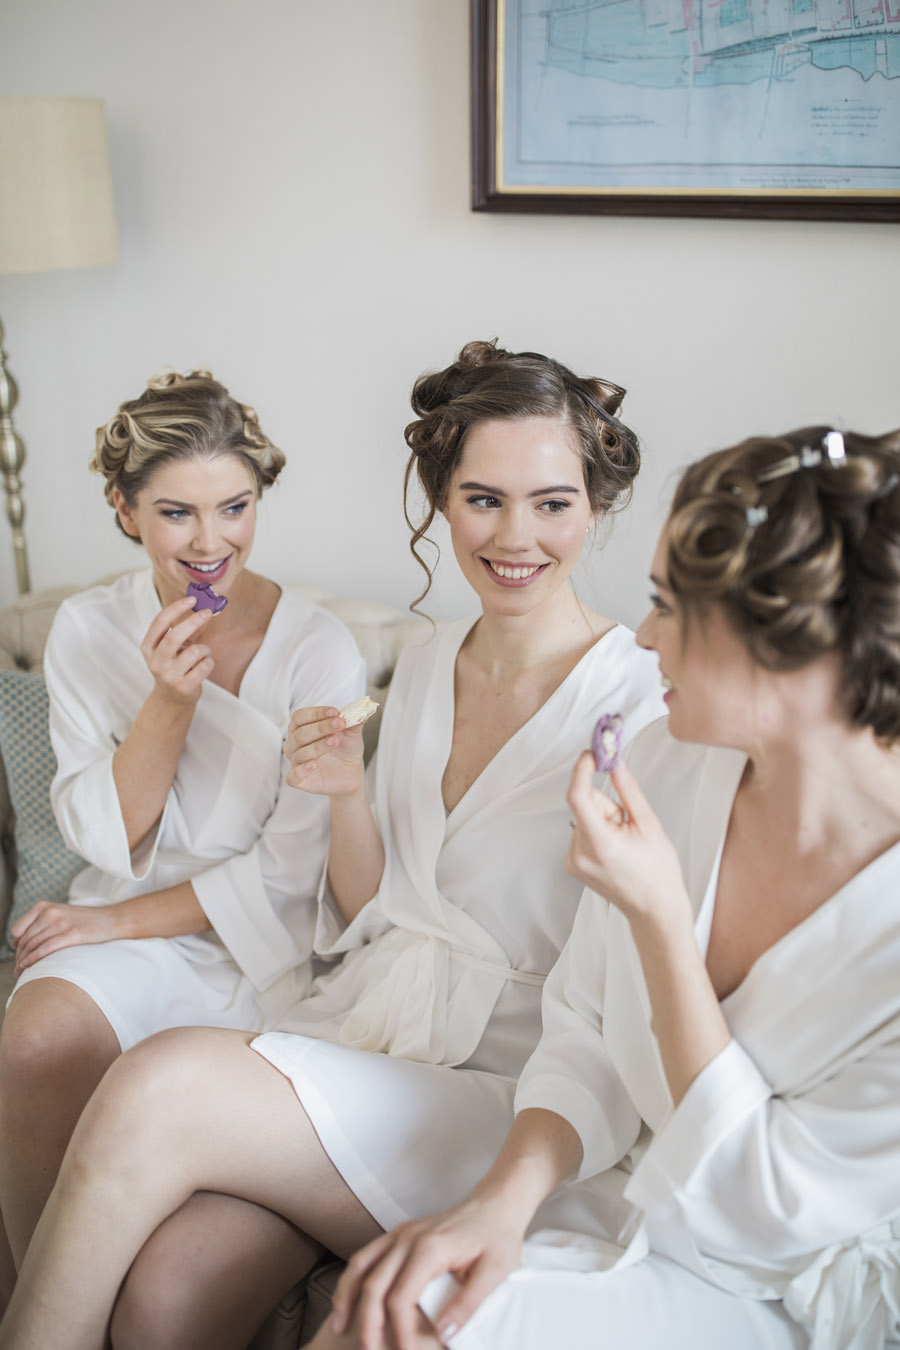 for bridesmaids everywhere, with love. Image credit Natalie D Photography (11)